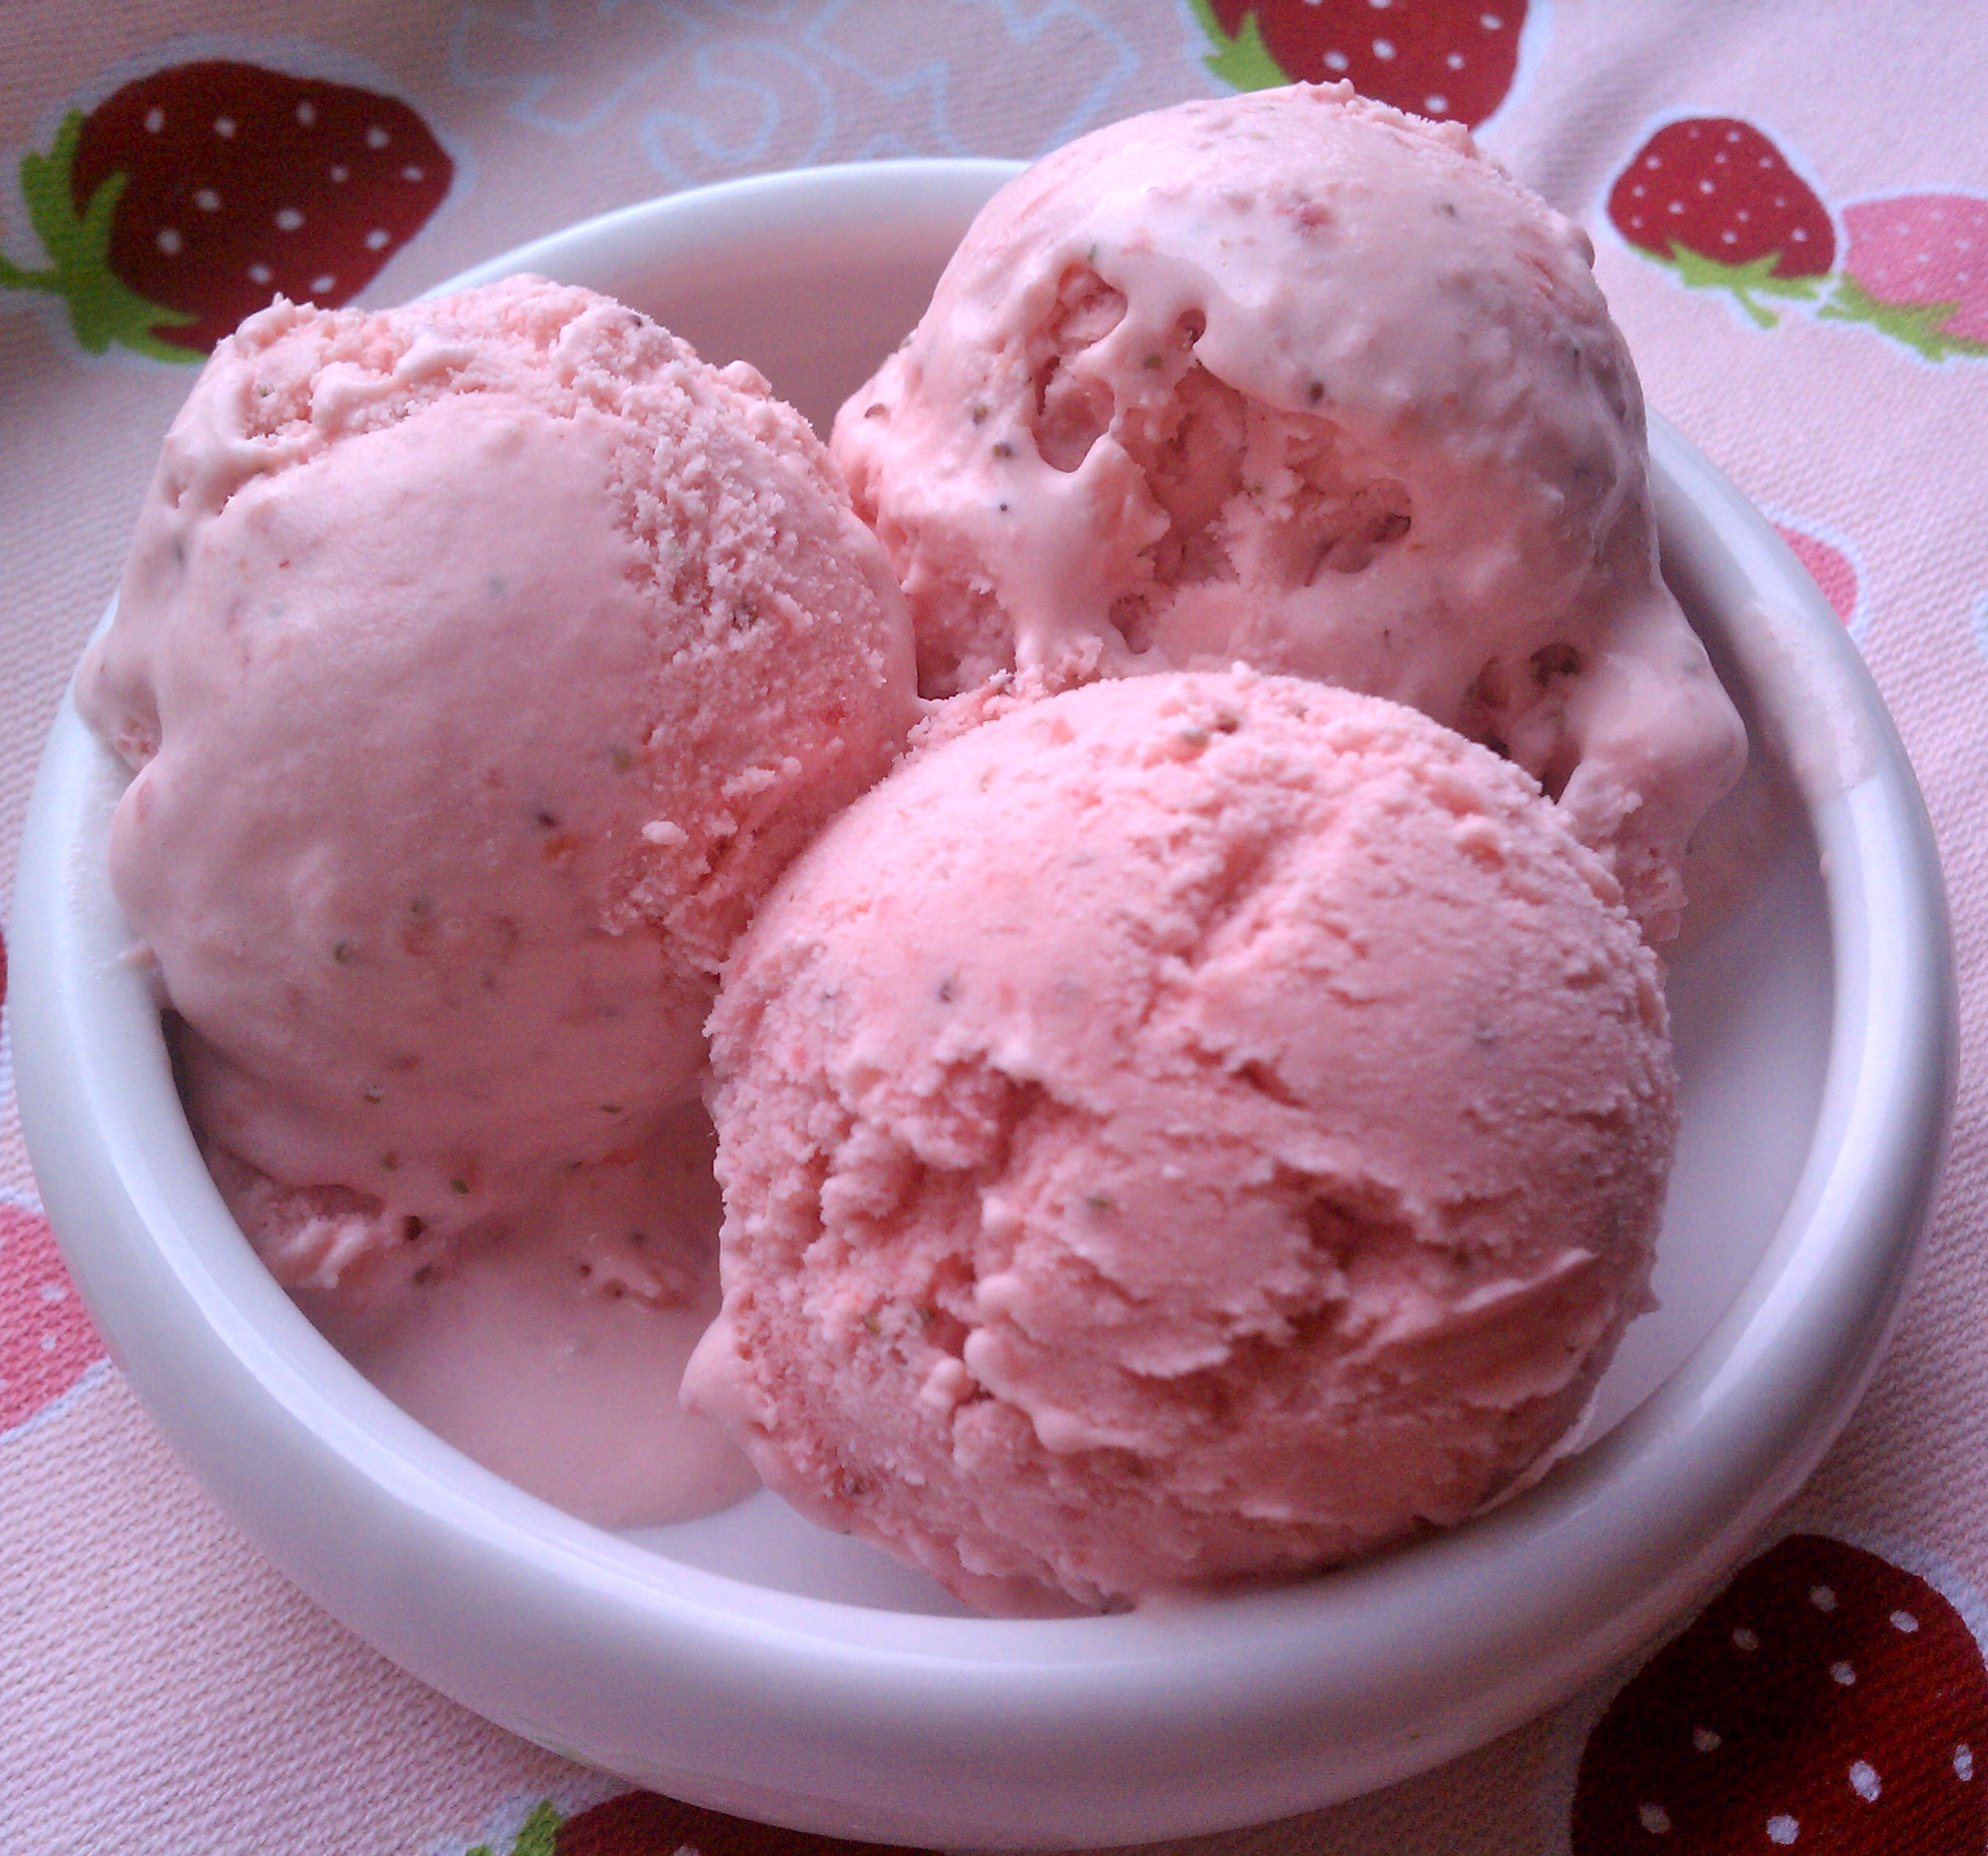 sour cream ice strawberry sour cream ice strawberry sour cream ice the ...